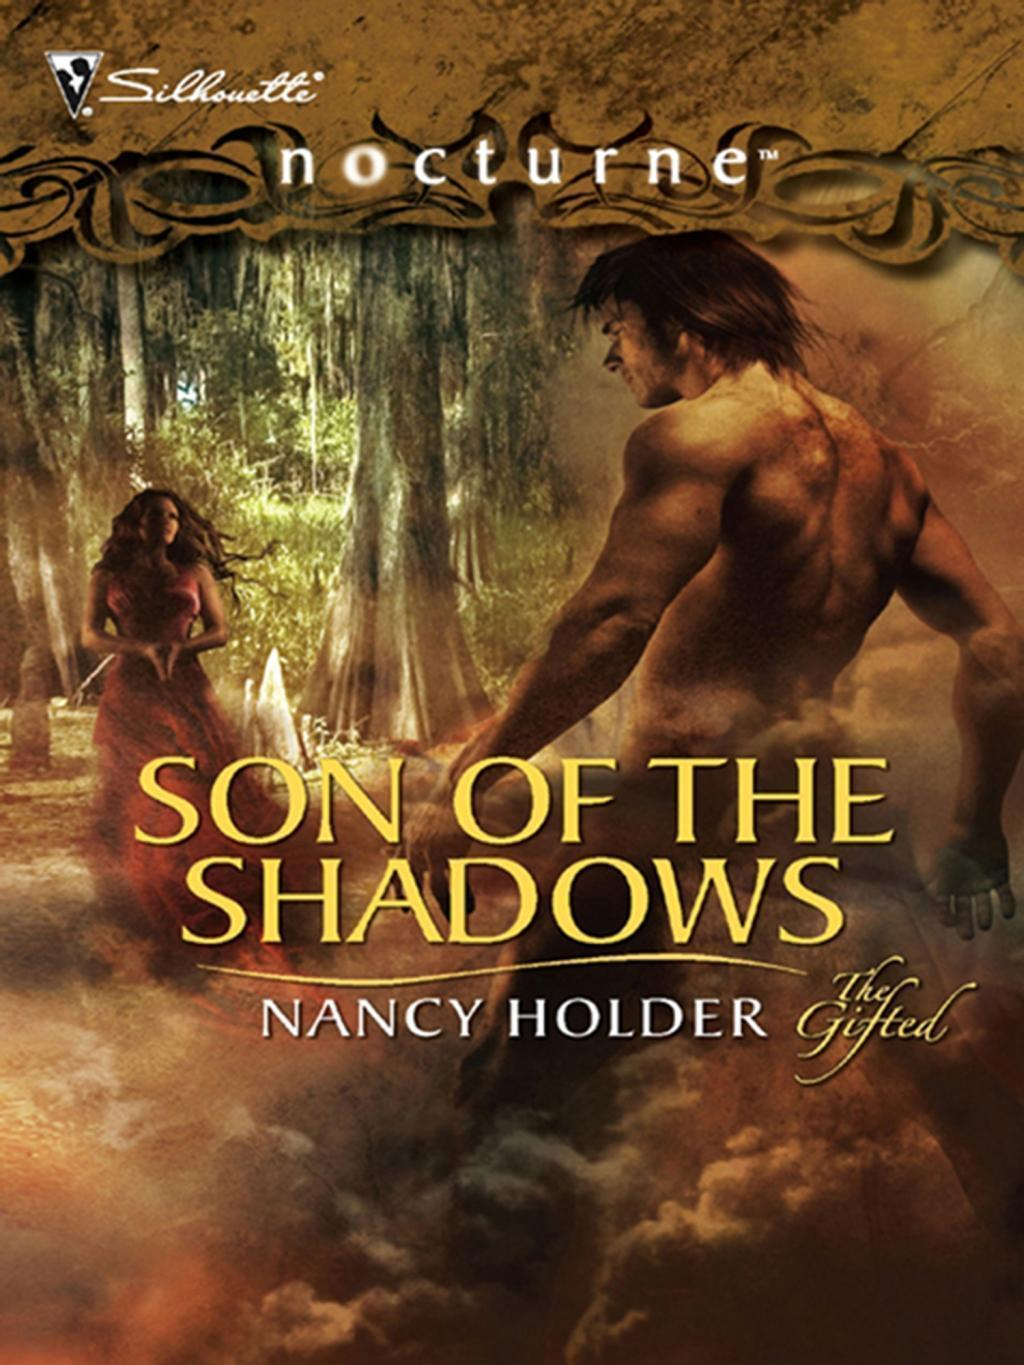 Son of the Shadows (Mills & Boon Intrigue) (The Gifted, Book 3)